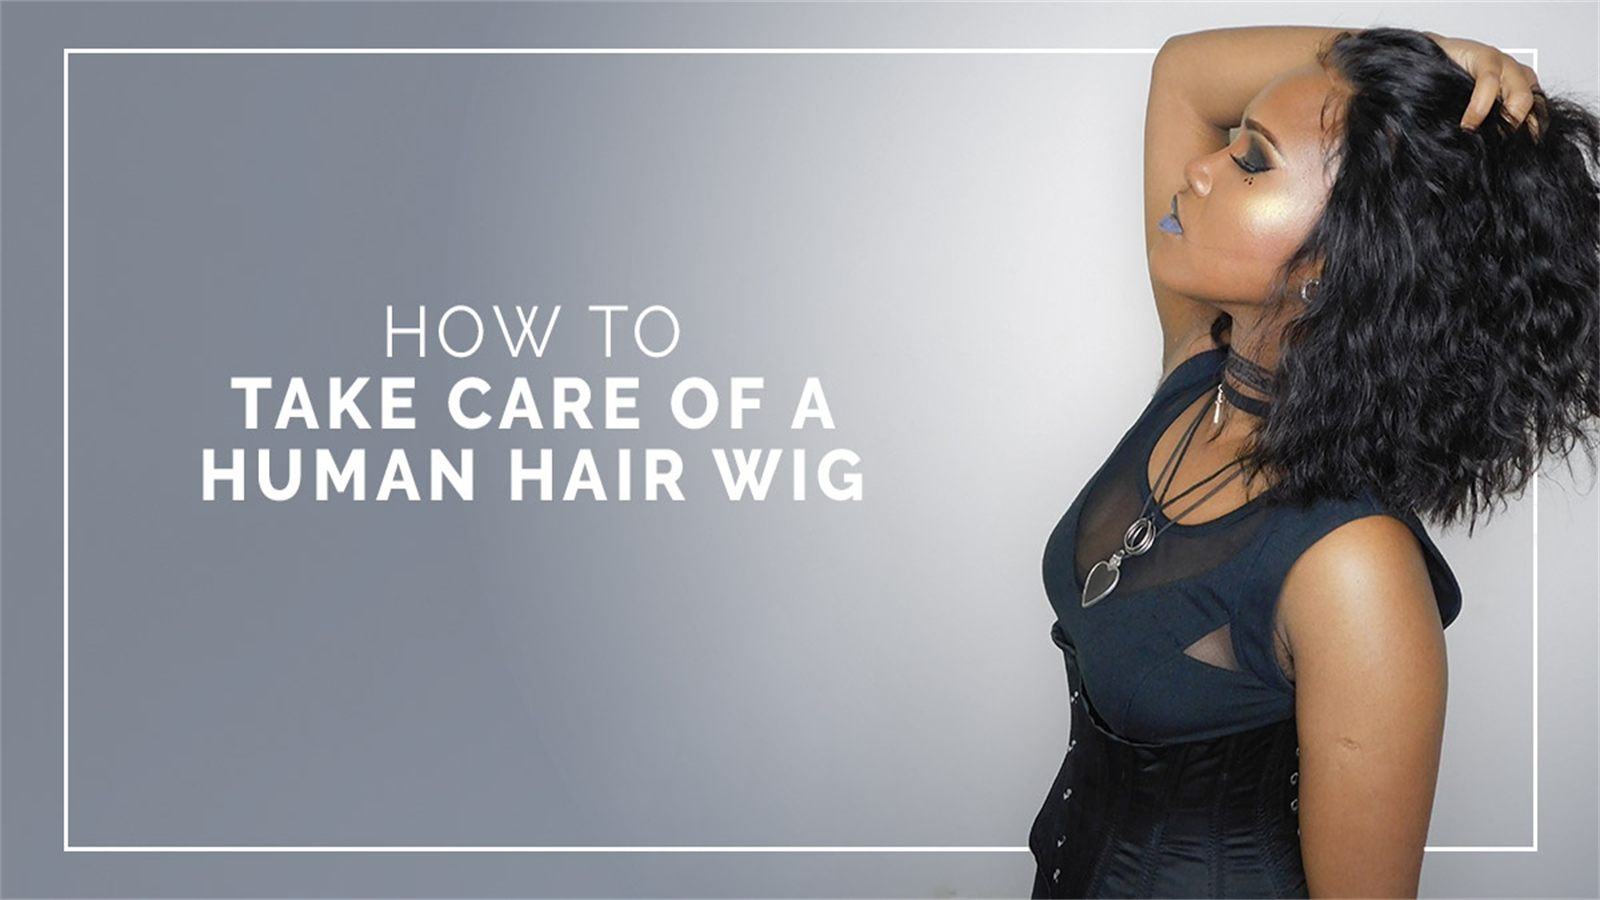 How often should we wash a human hair wig?